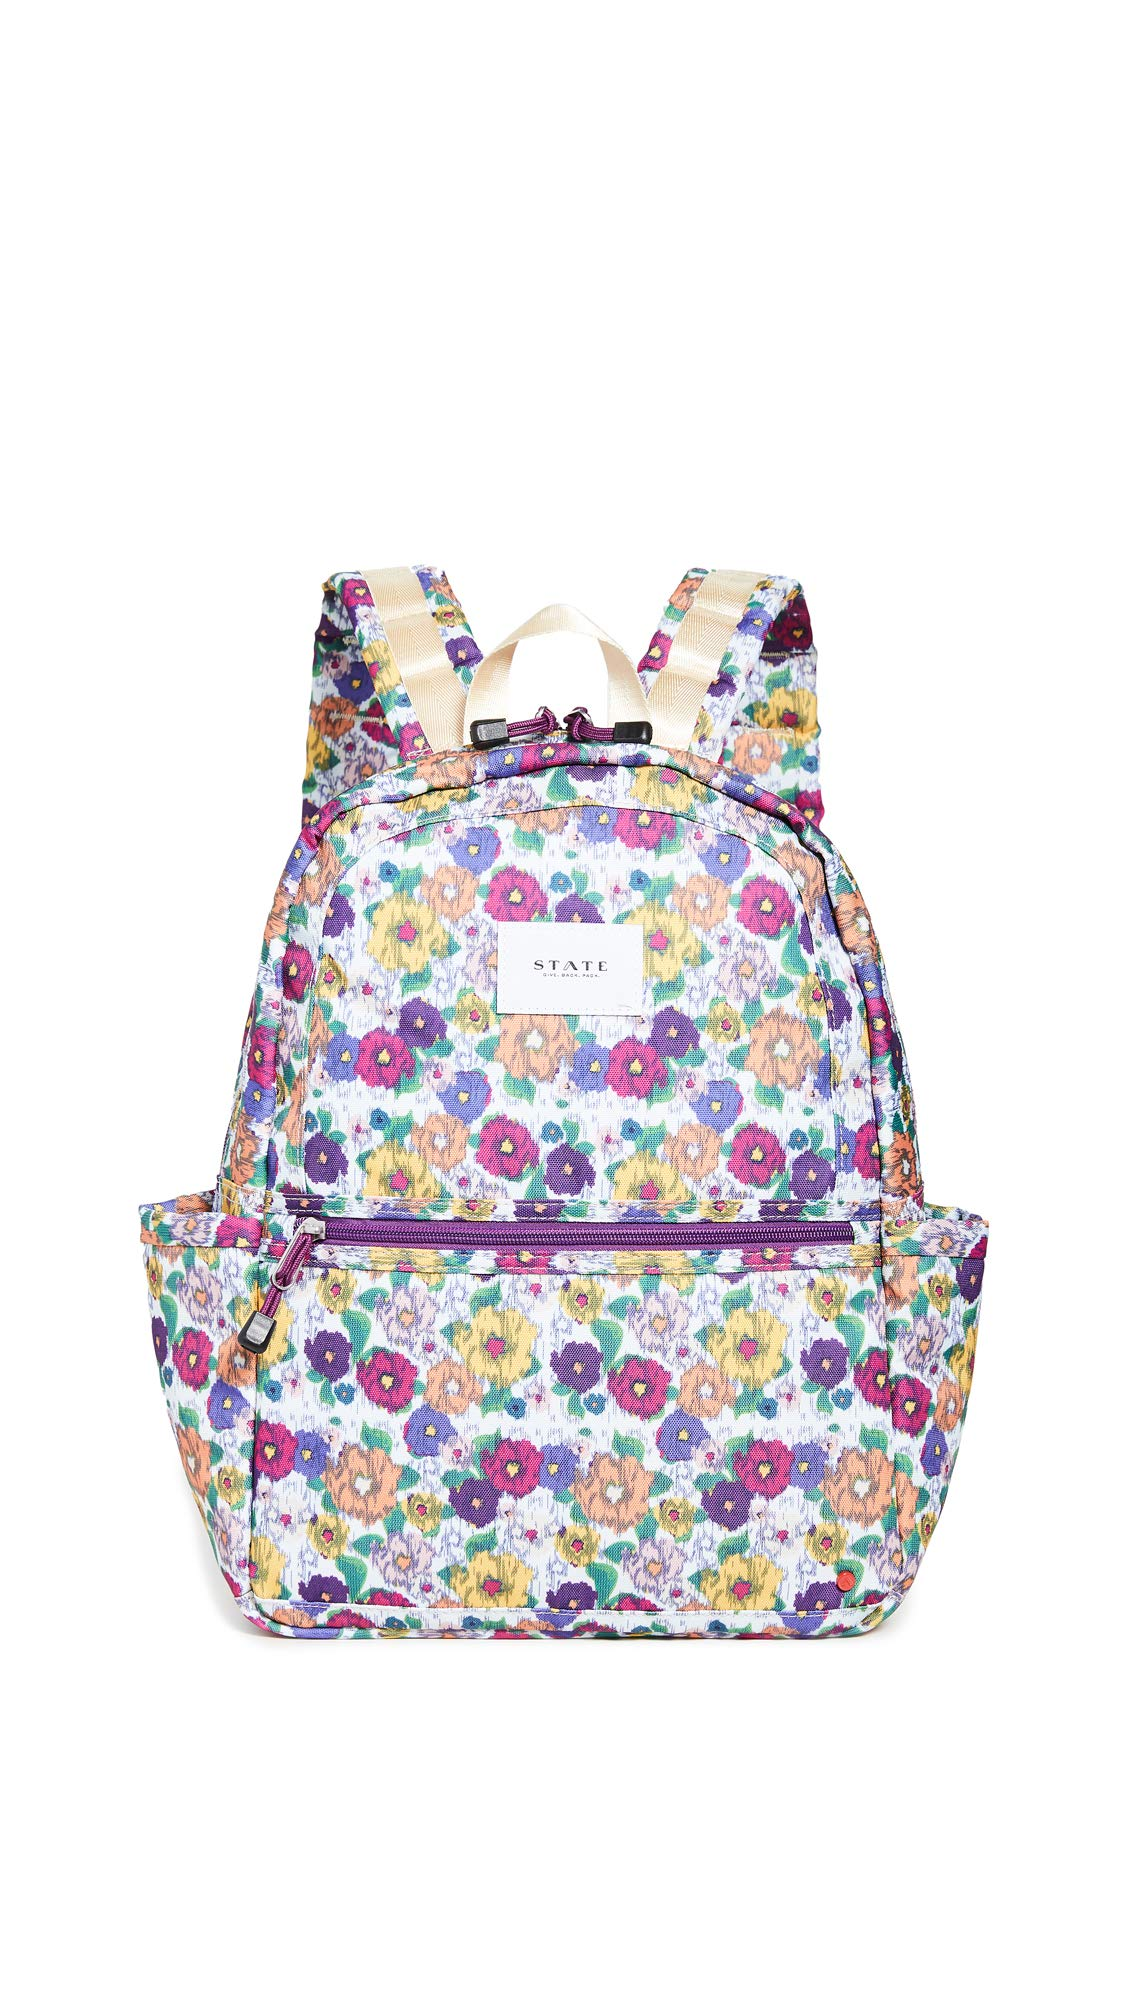 STATE Women's Kane Backpack, White Multi, One Size by STATE Bags